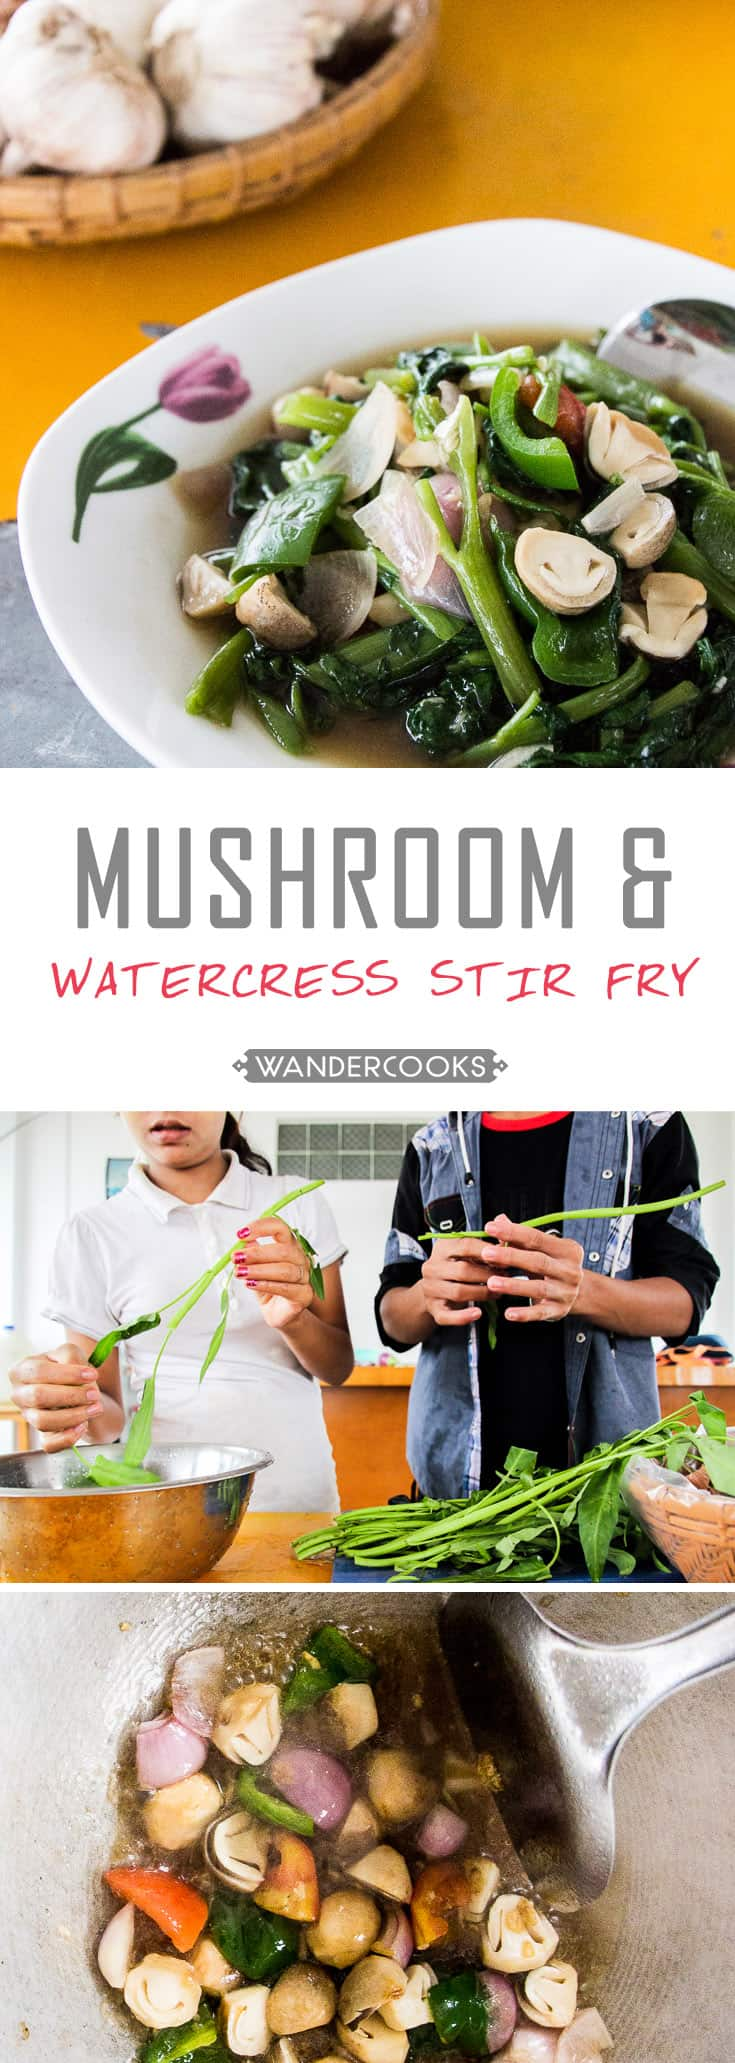 Mushroom and Watercress Stir Fry - All salty and sweet goodness you could ask for in a quick, healthy stir fry that's ready in minutes. | wandercooks.com